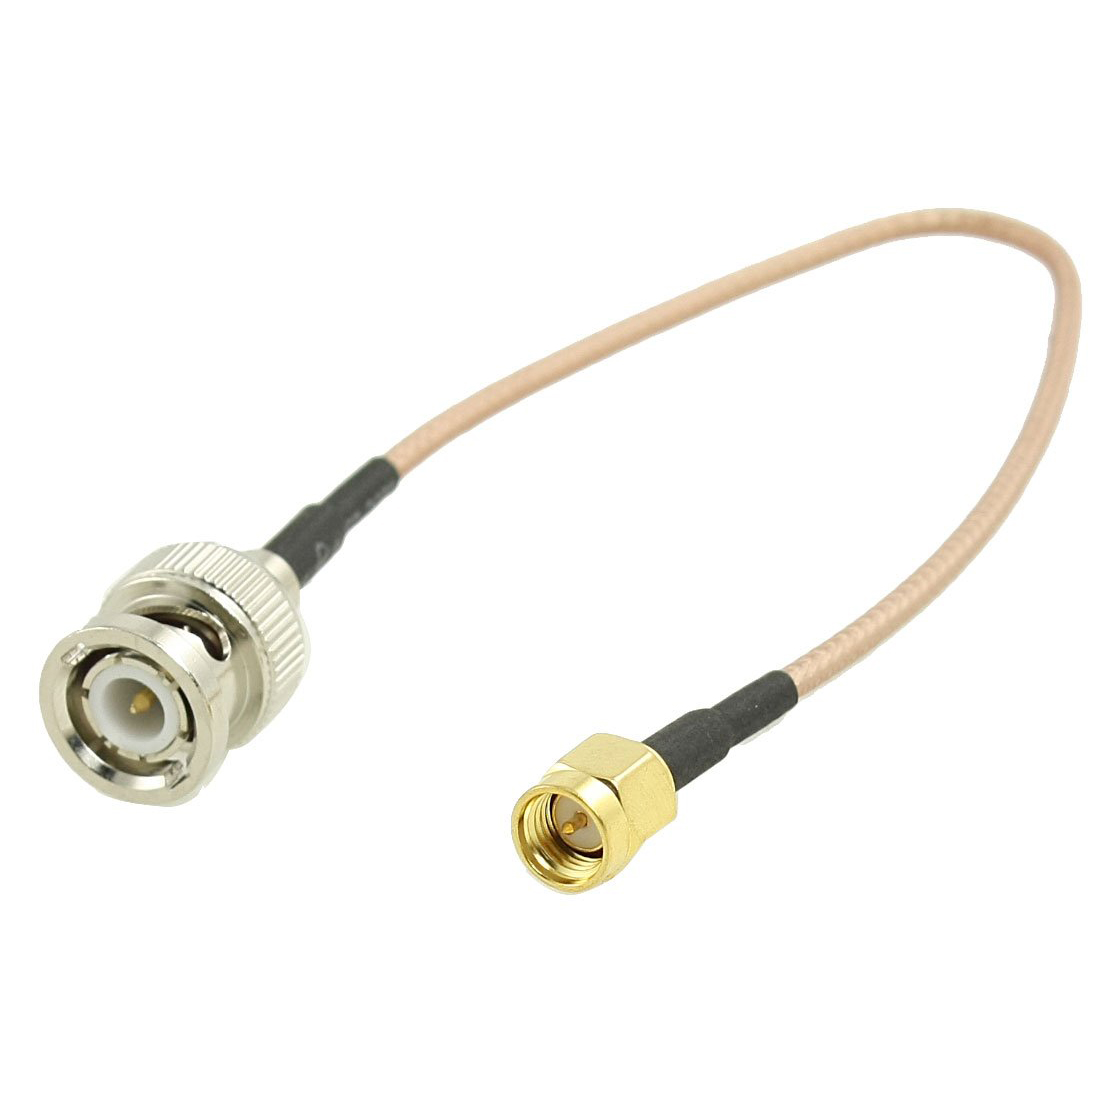 IMC Hot Gold-Plated BNC Male to SMA Male Connector Coaxial Cable 8.8 bnc straight cable connector 2 pack